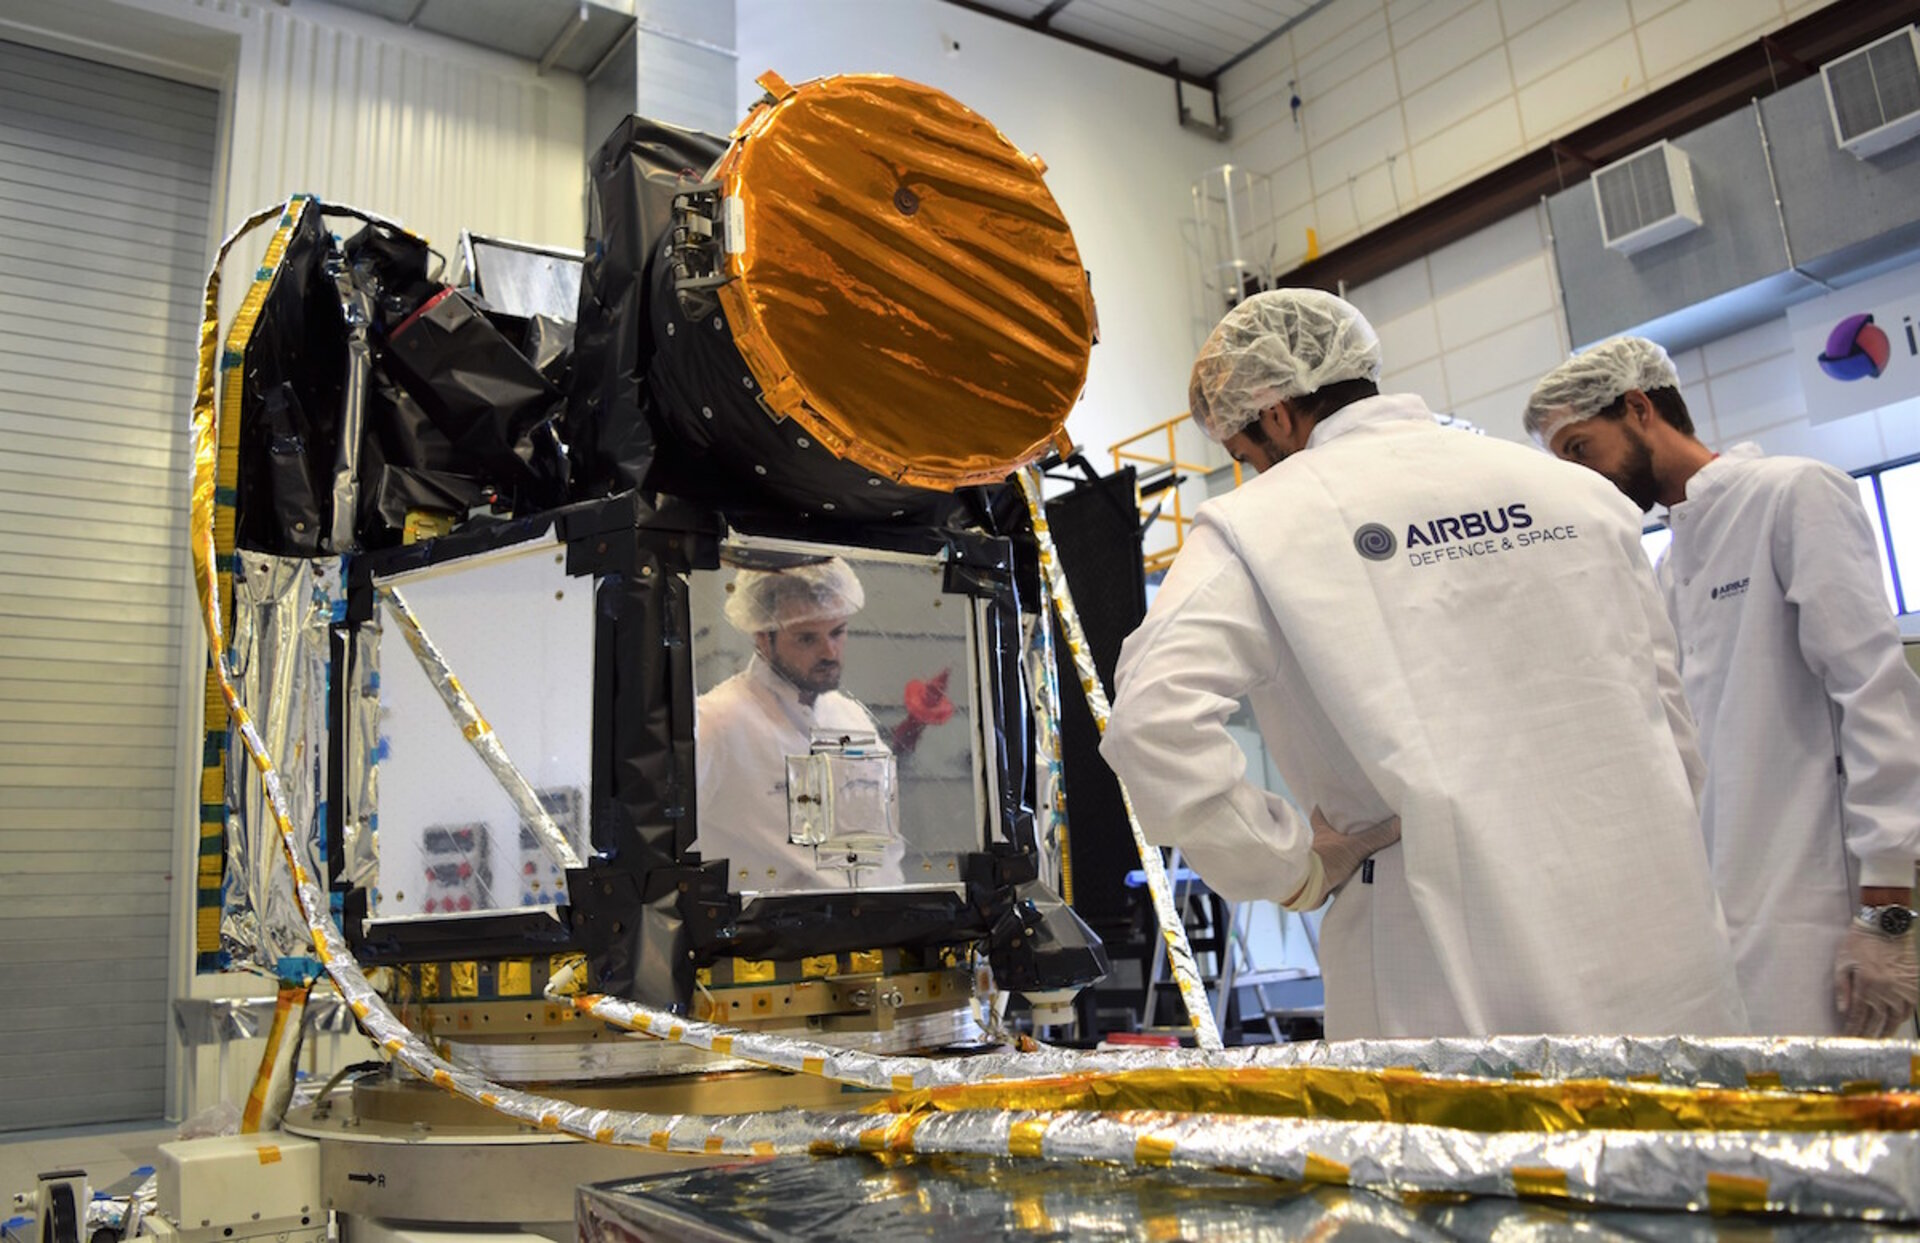 Inspecting the fully-integrated Cheops satellite